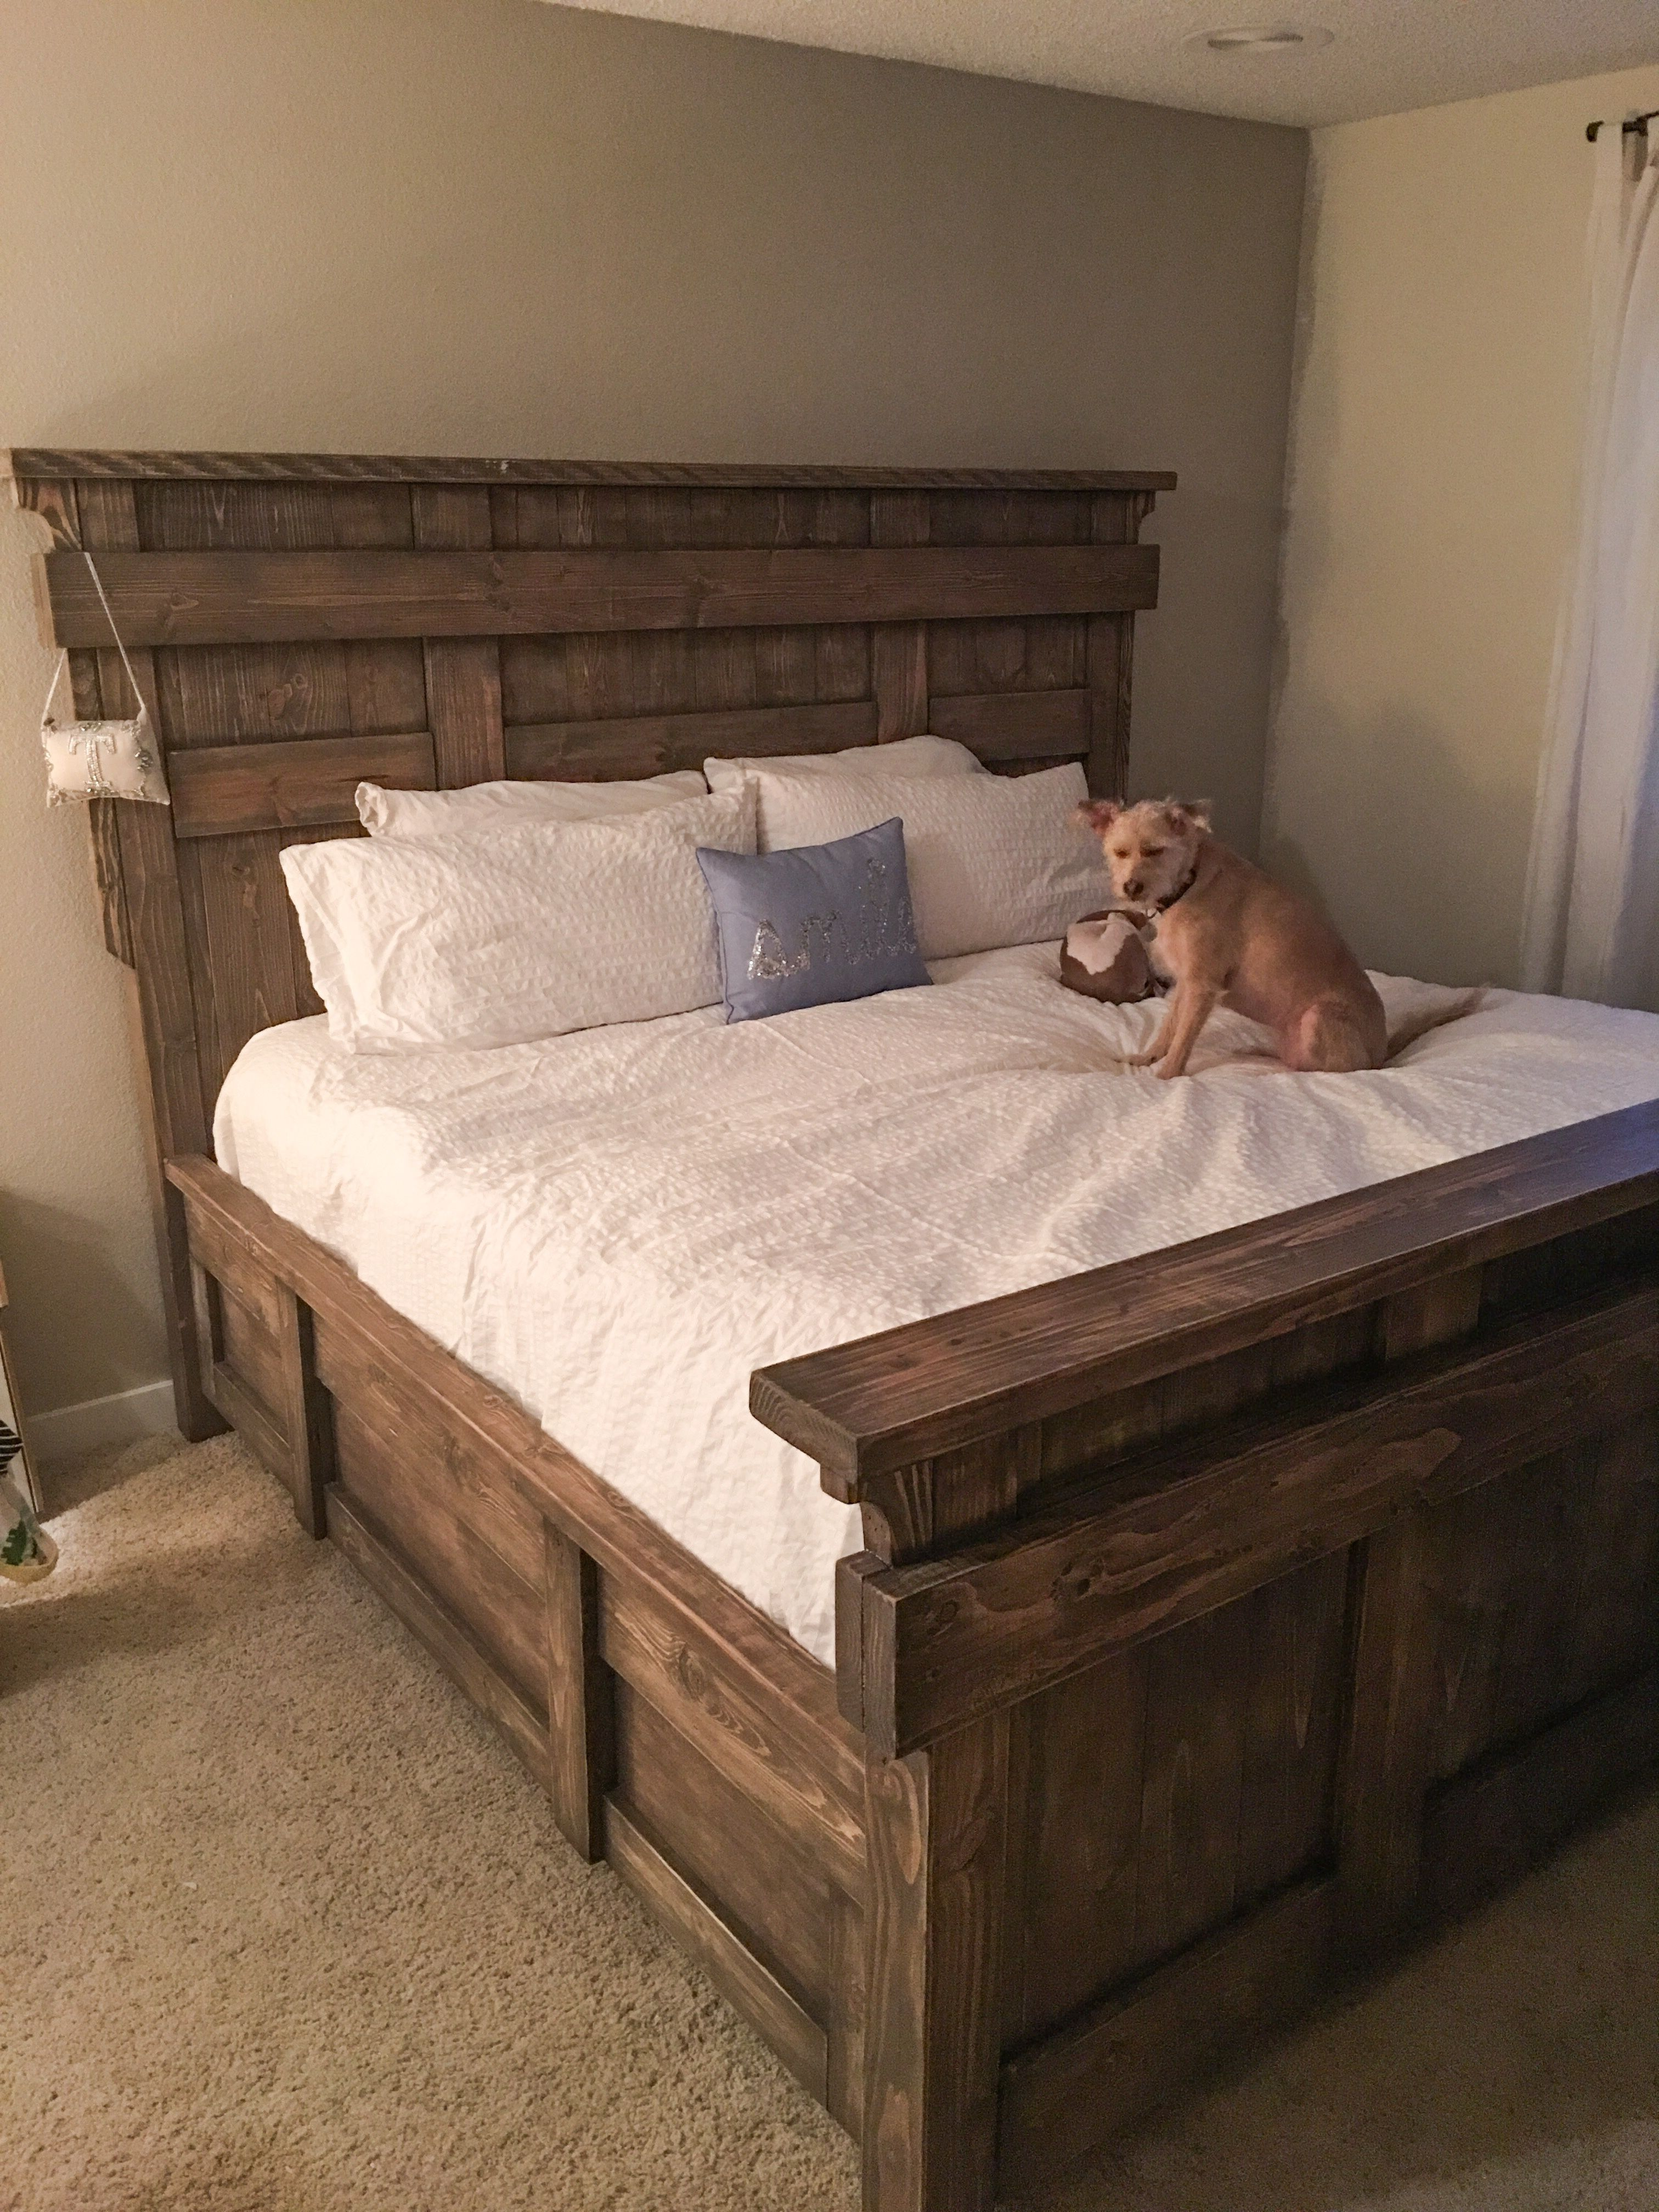 Diy King Size Bed Free Plans King Size Bed Frame King Size Bed